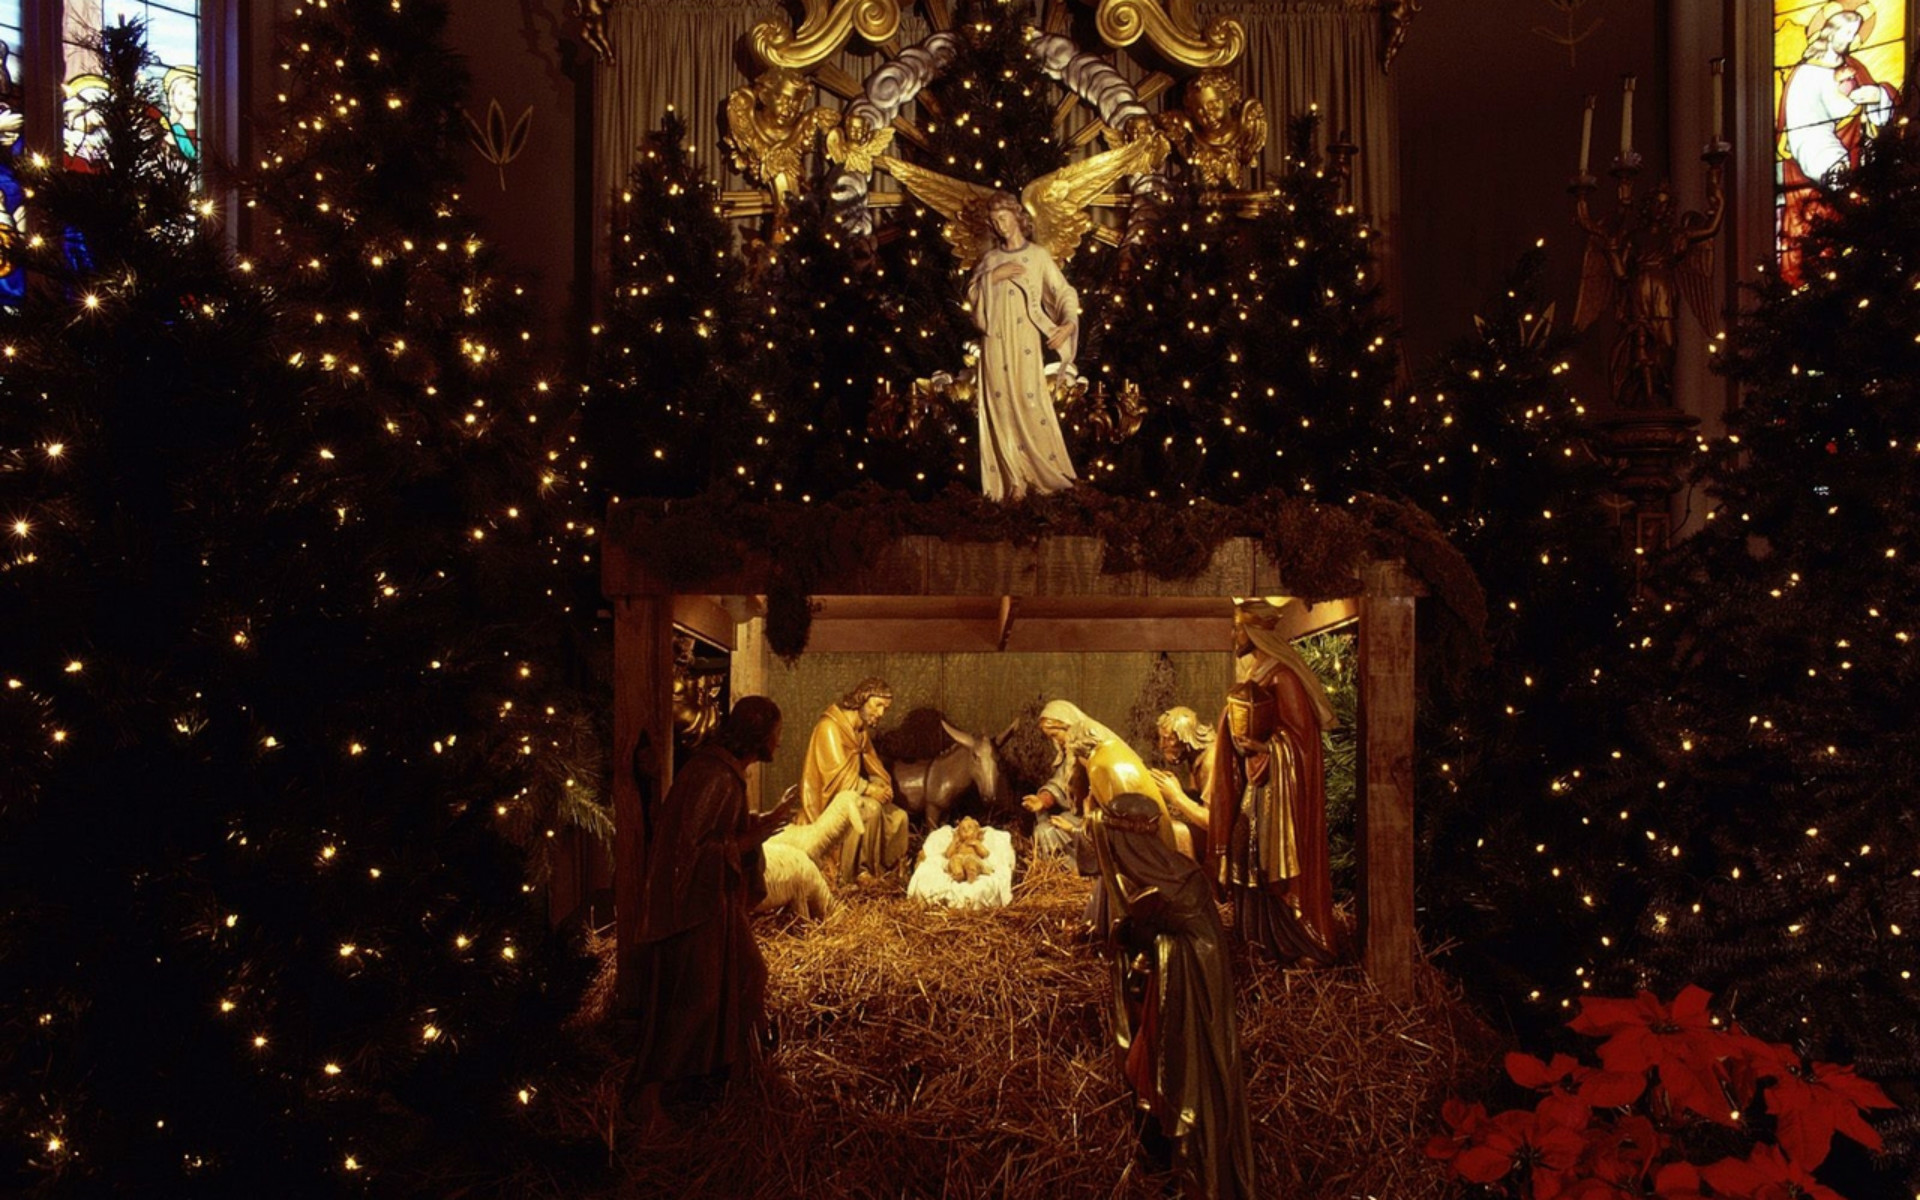 15 Christmas Tree In Lights Wallpapers